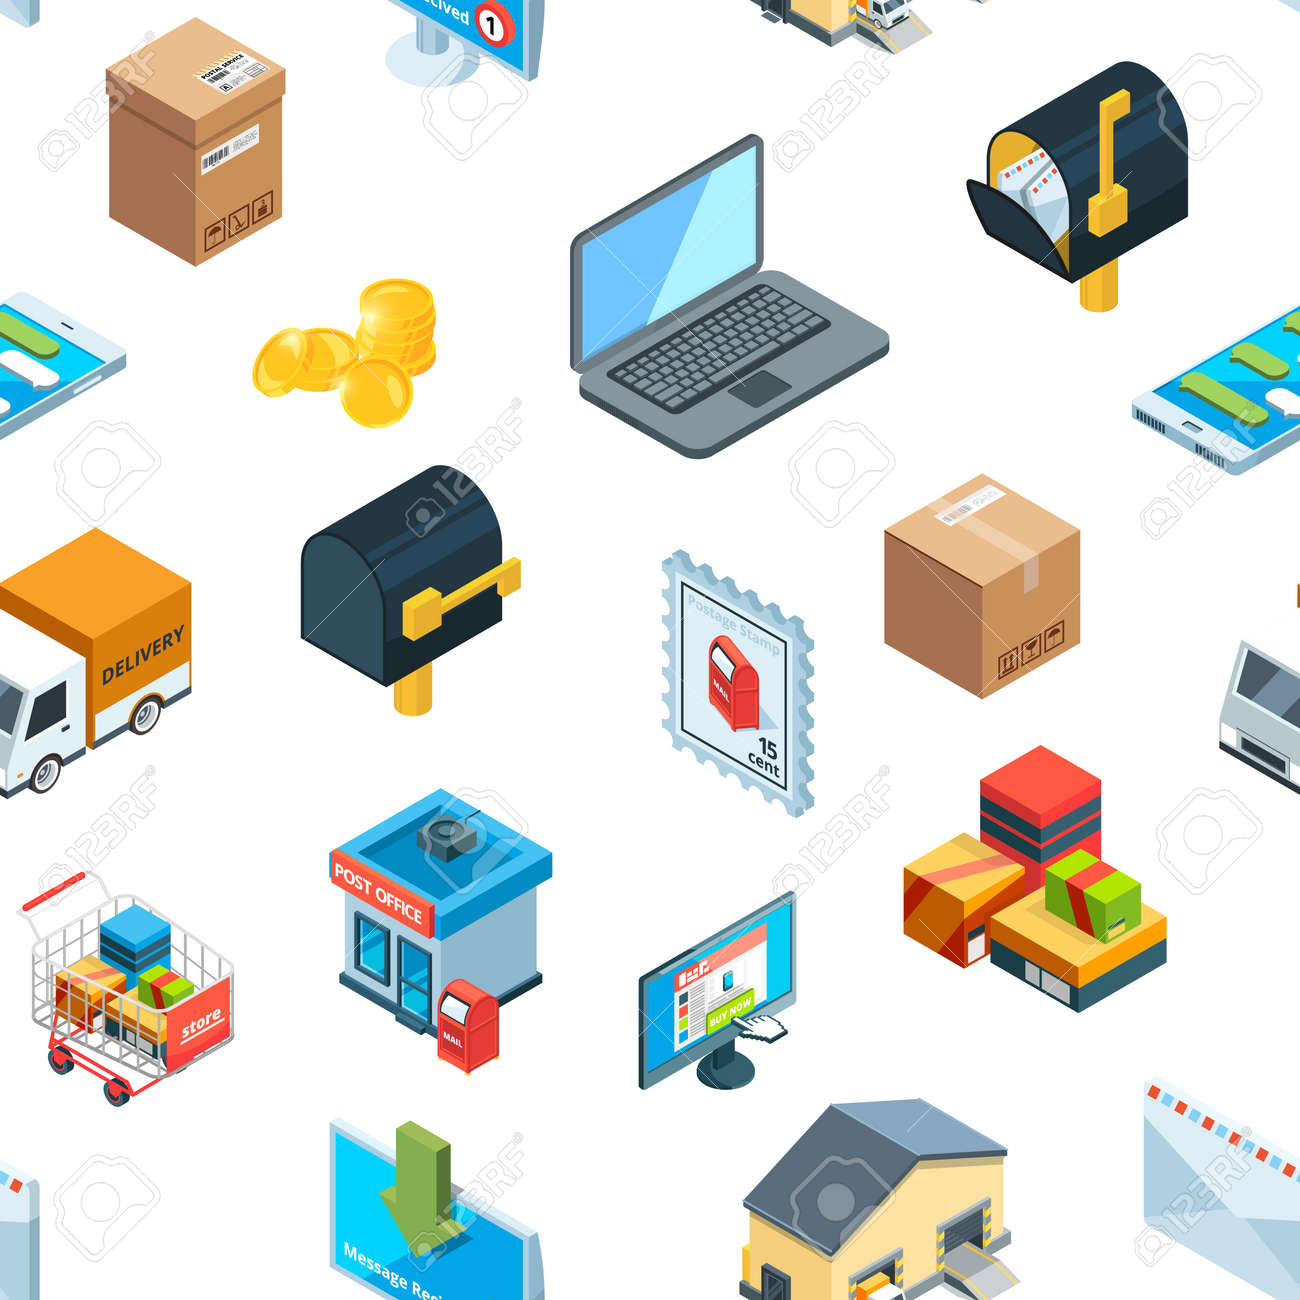 Vector isometric logistics delivery icons pattern background illustration - 167543390